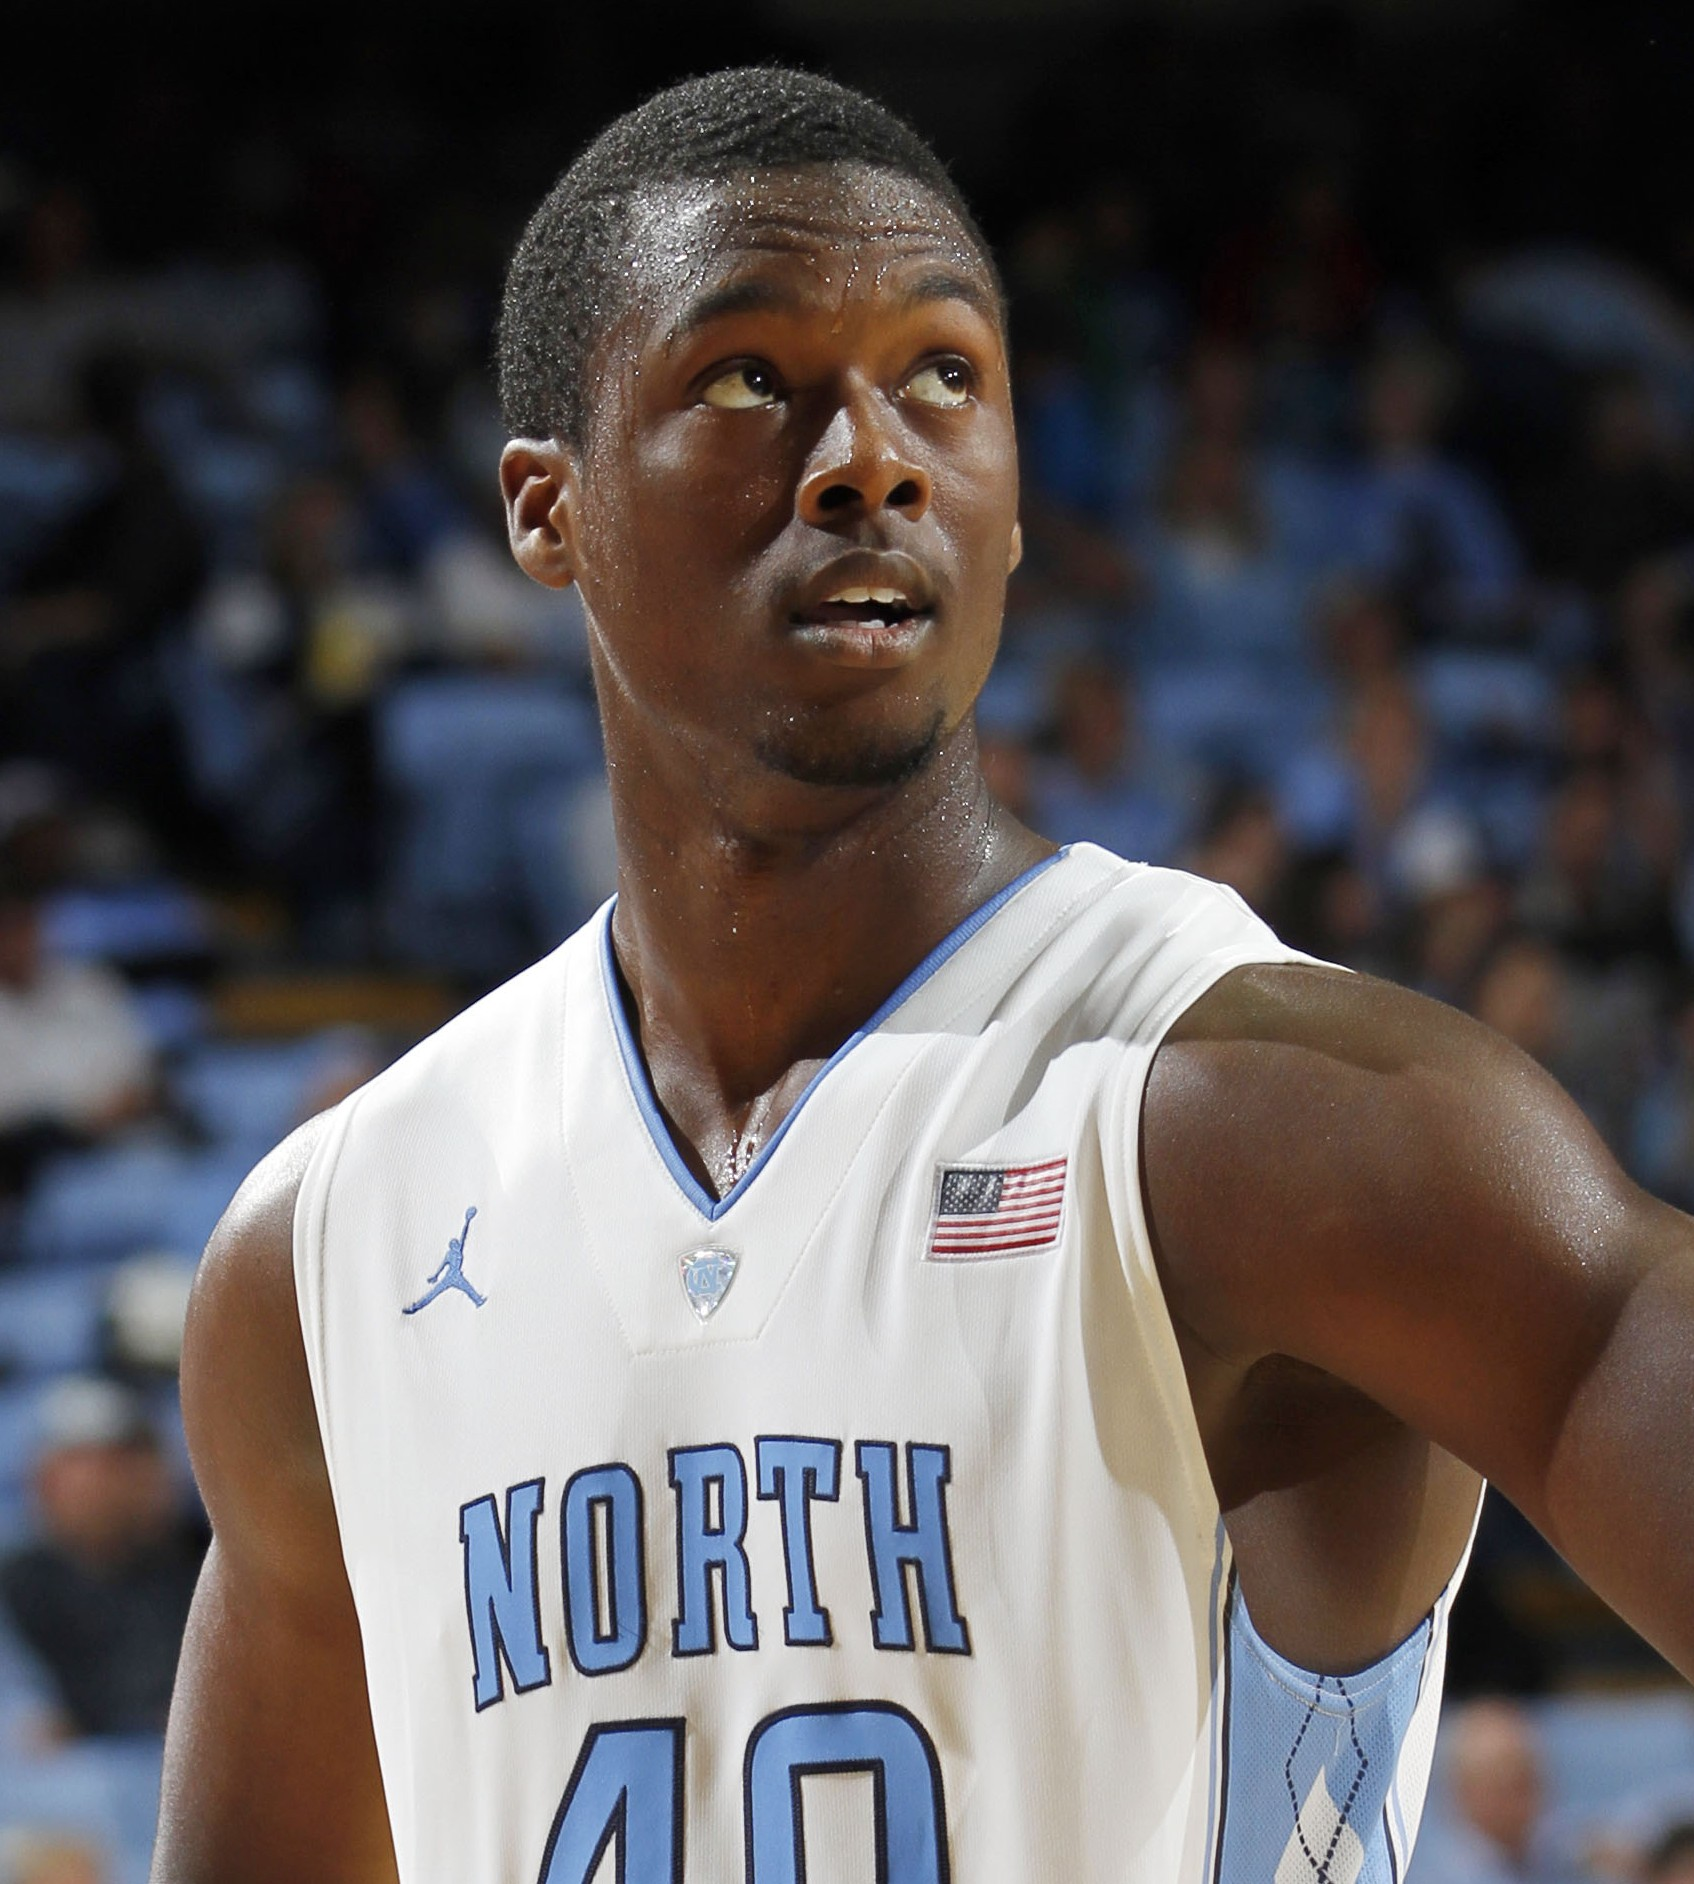 Harrison Barnes Unc: Carrier Classic Teams Have Strong Ties To Military